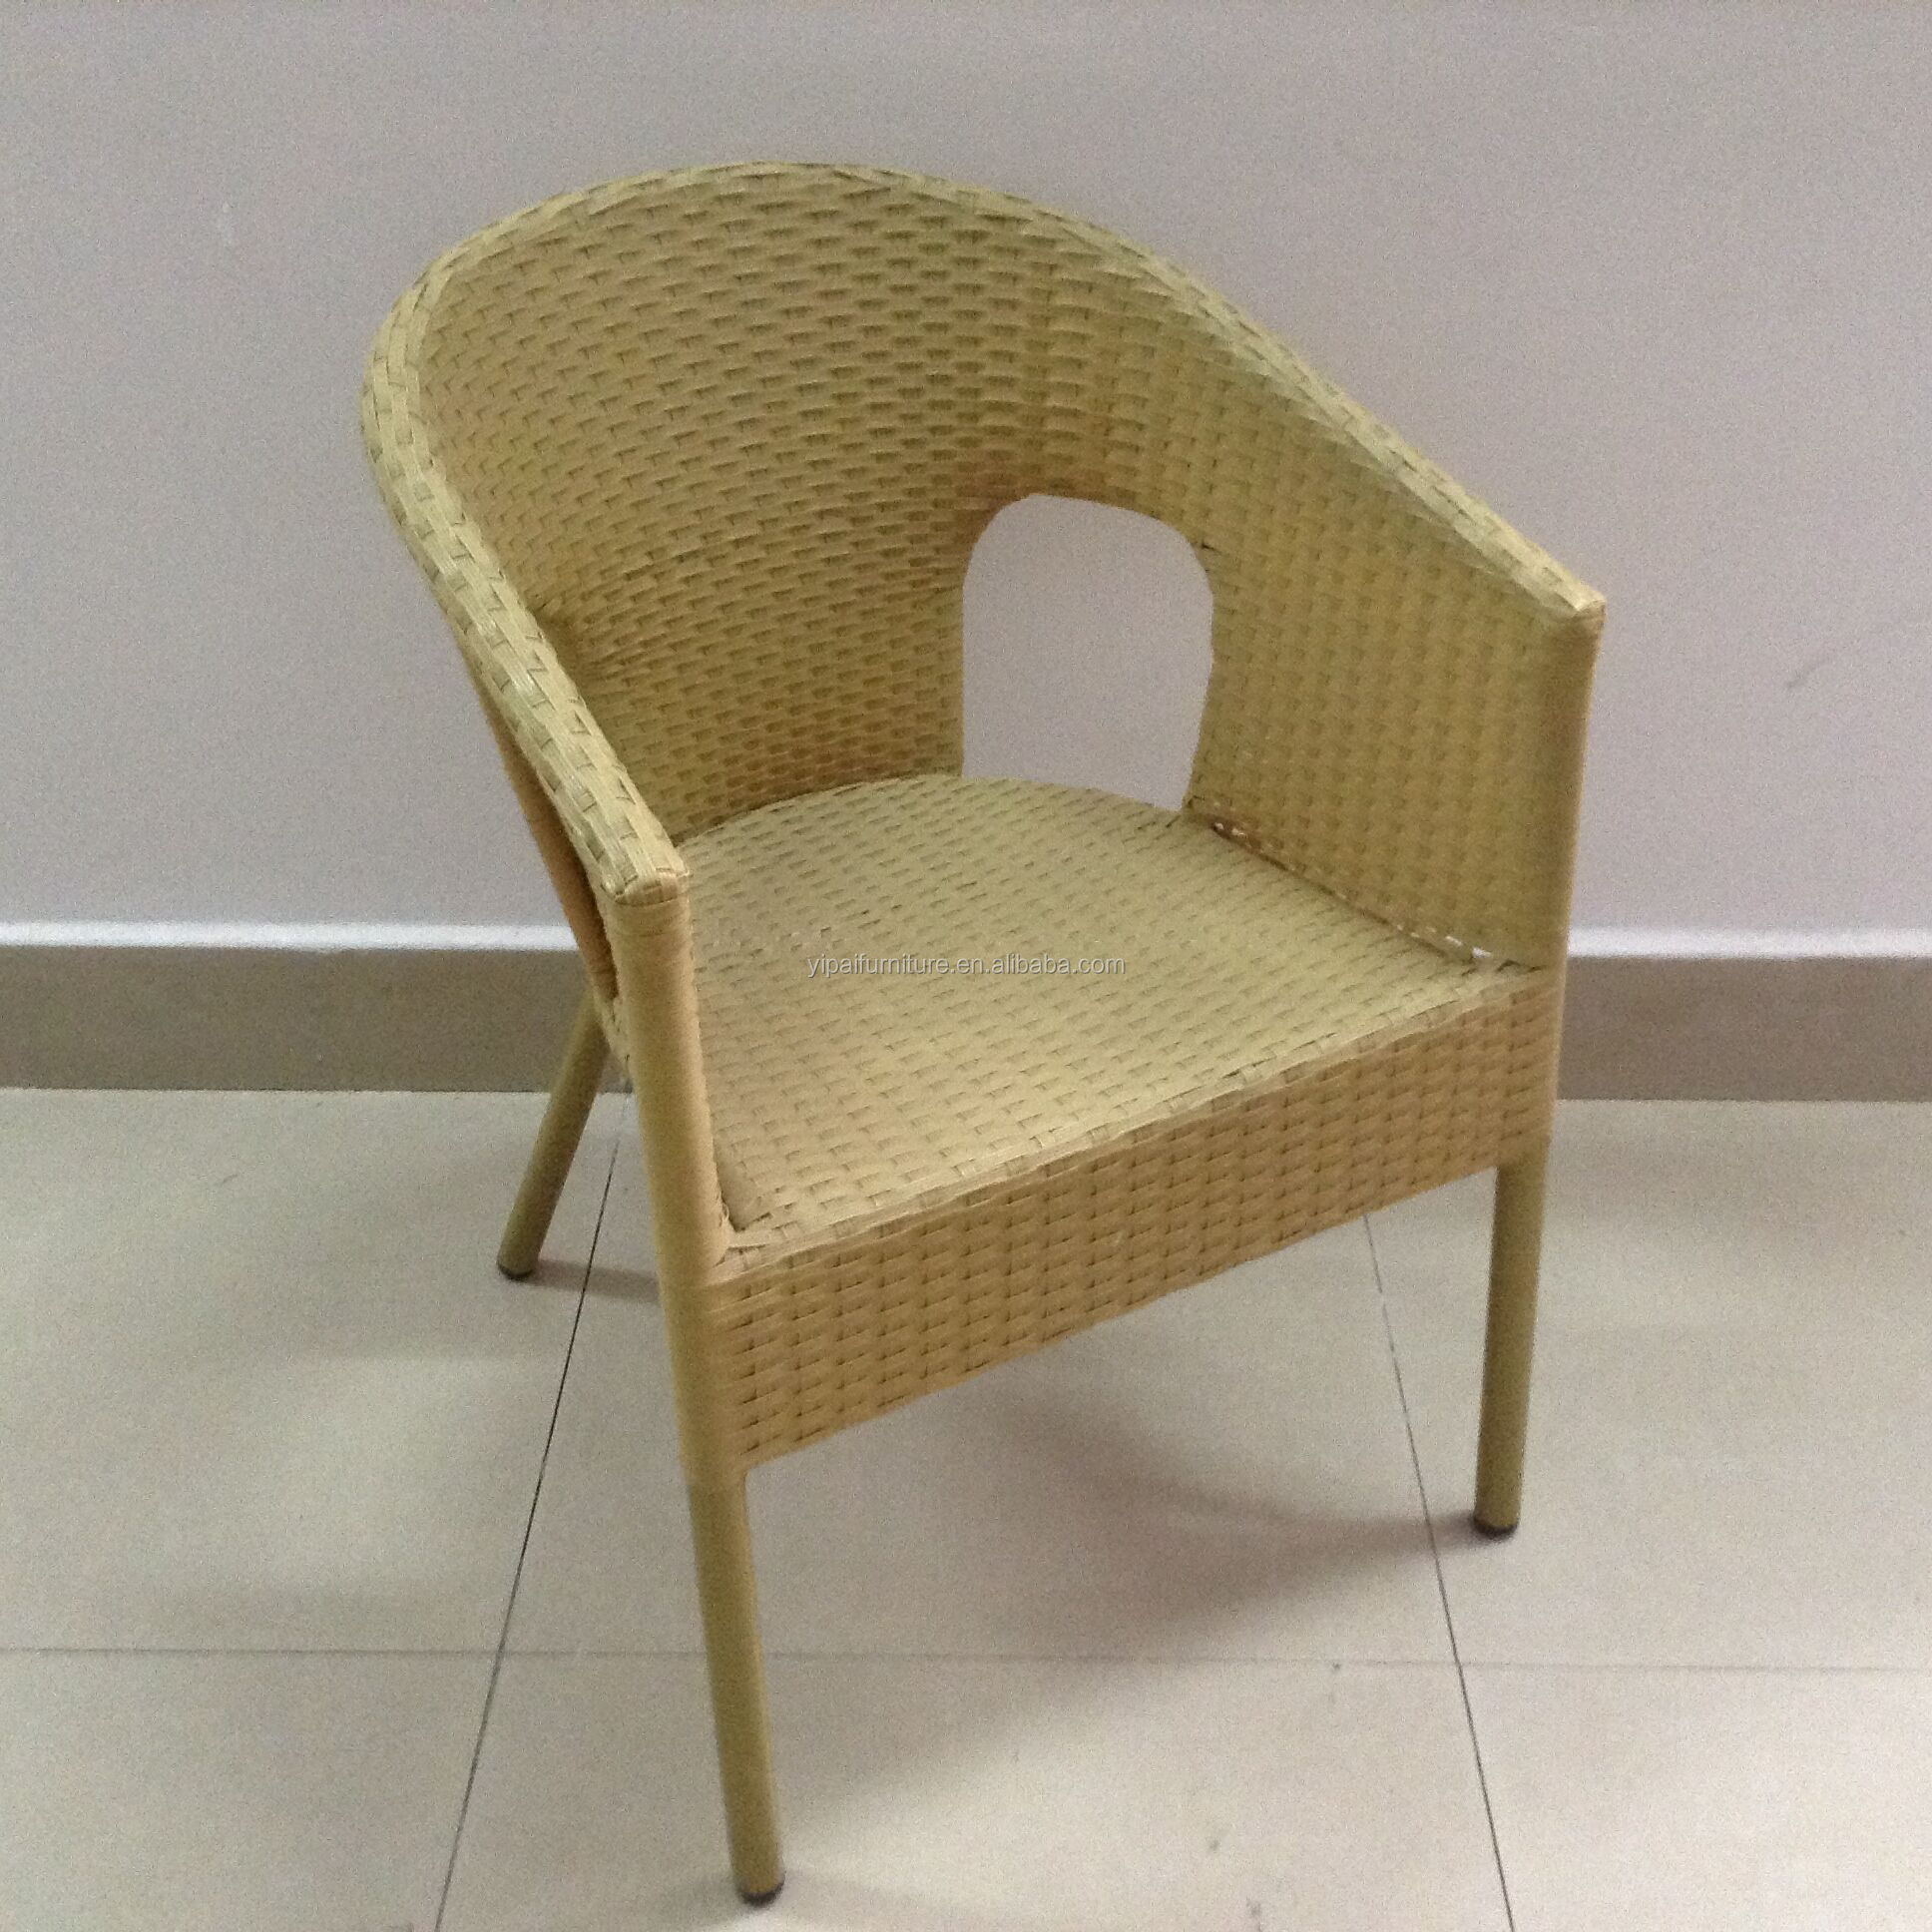 new design stackable rattan chairs wicker outdoor chairs buy wicker rattan chairs stackable rattan chairs rattan wicker tub chairs product on